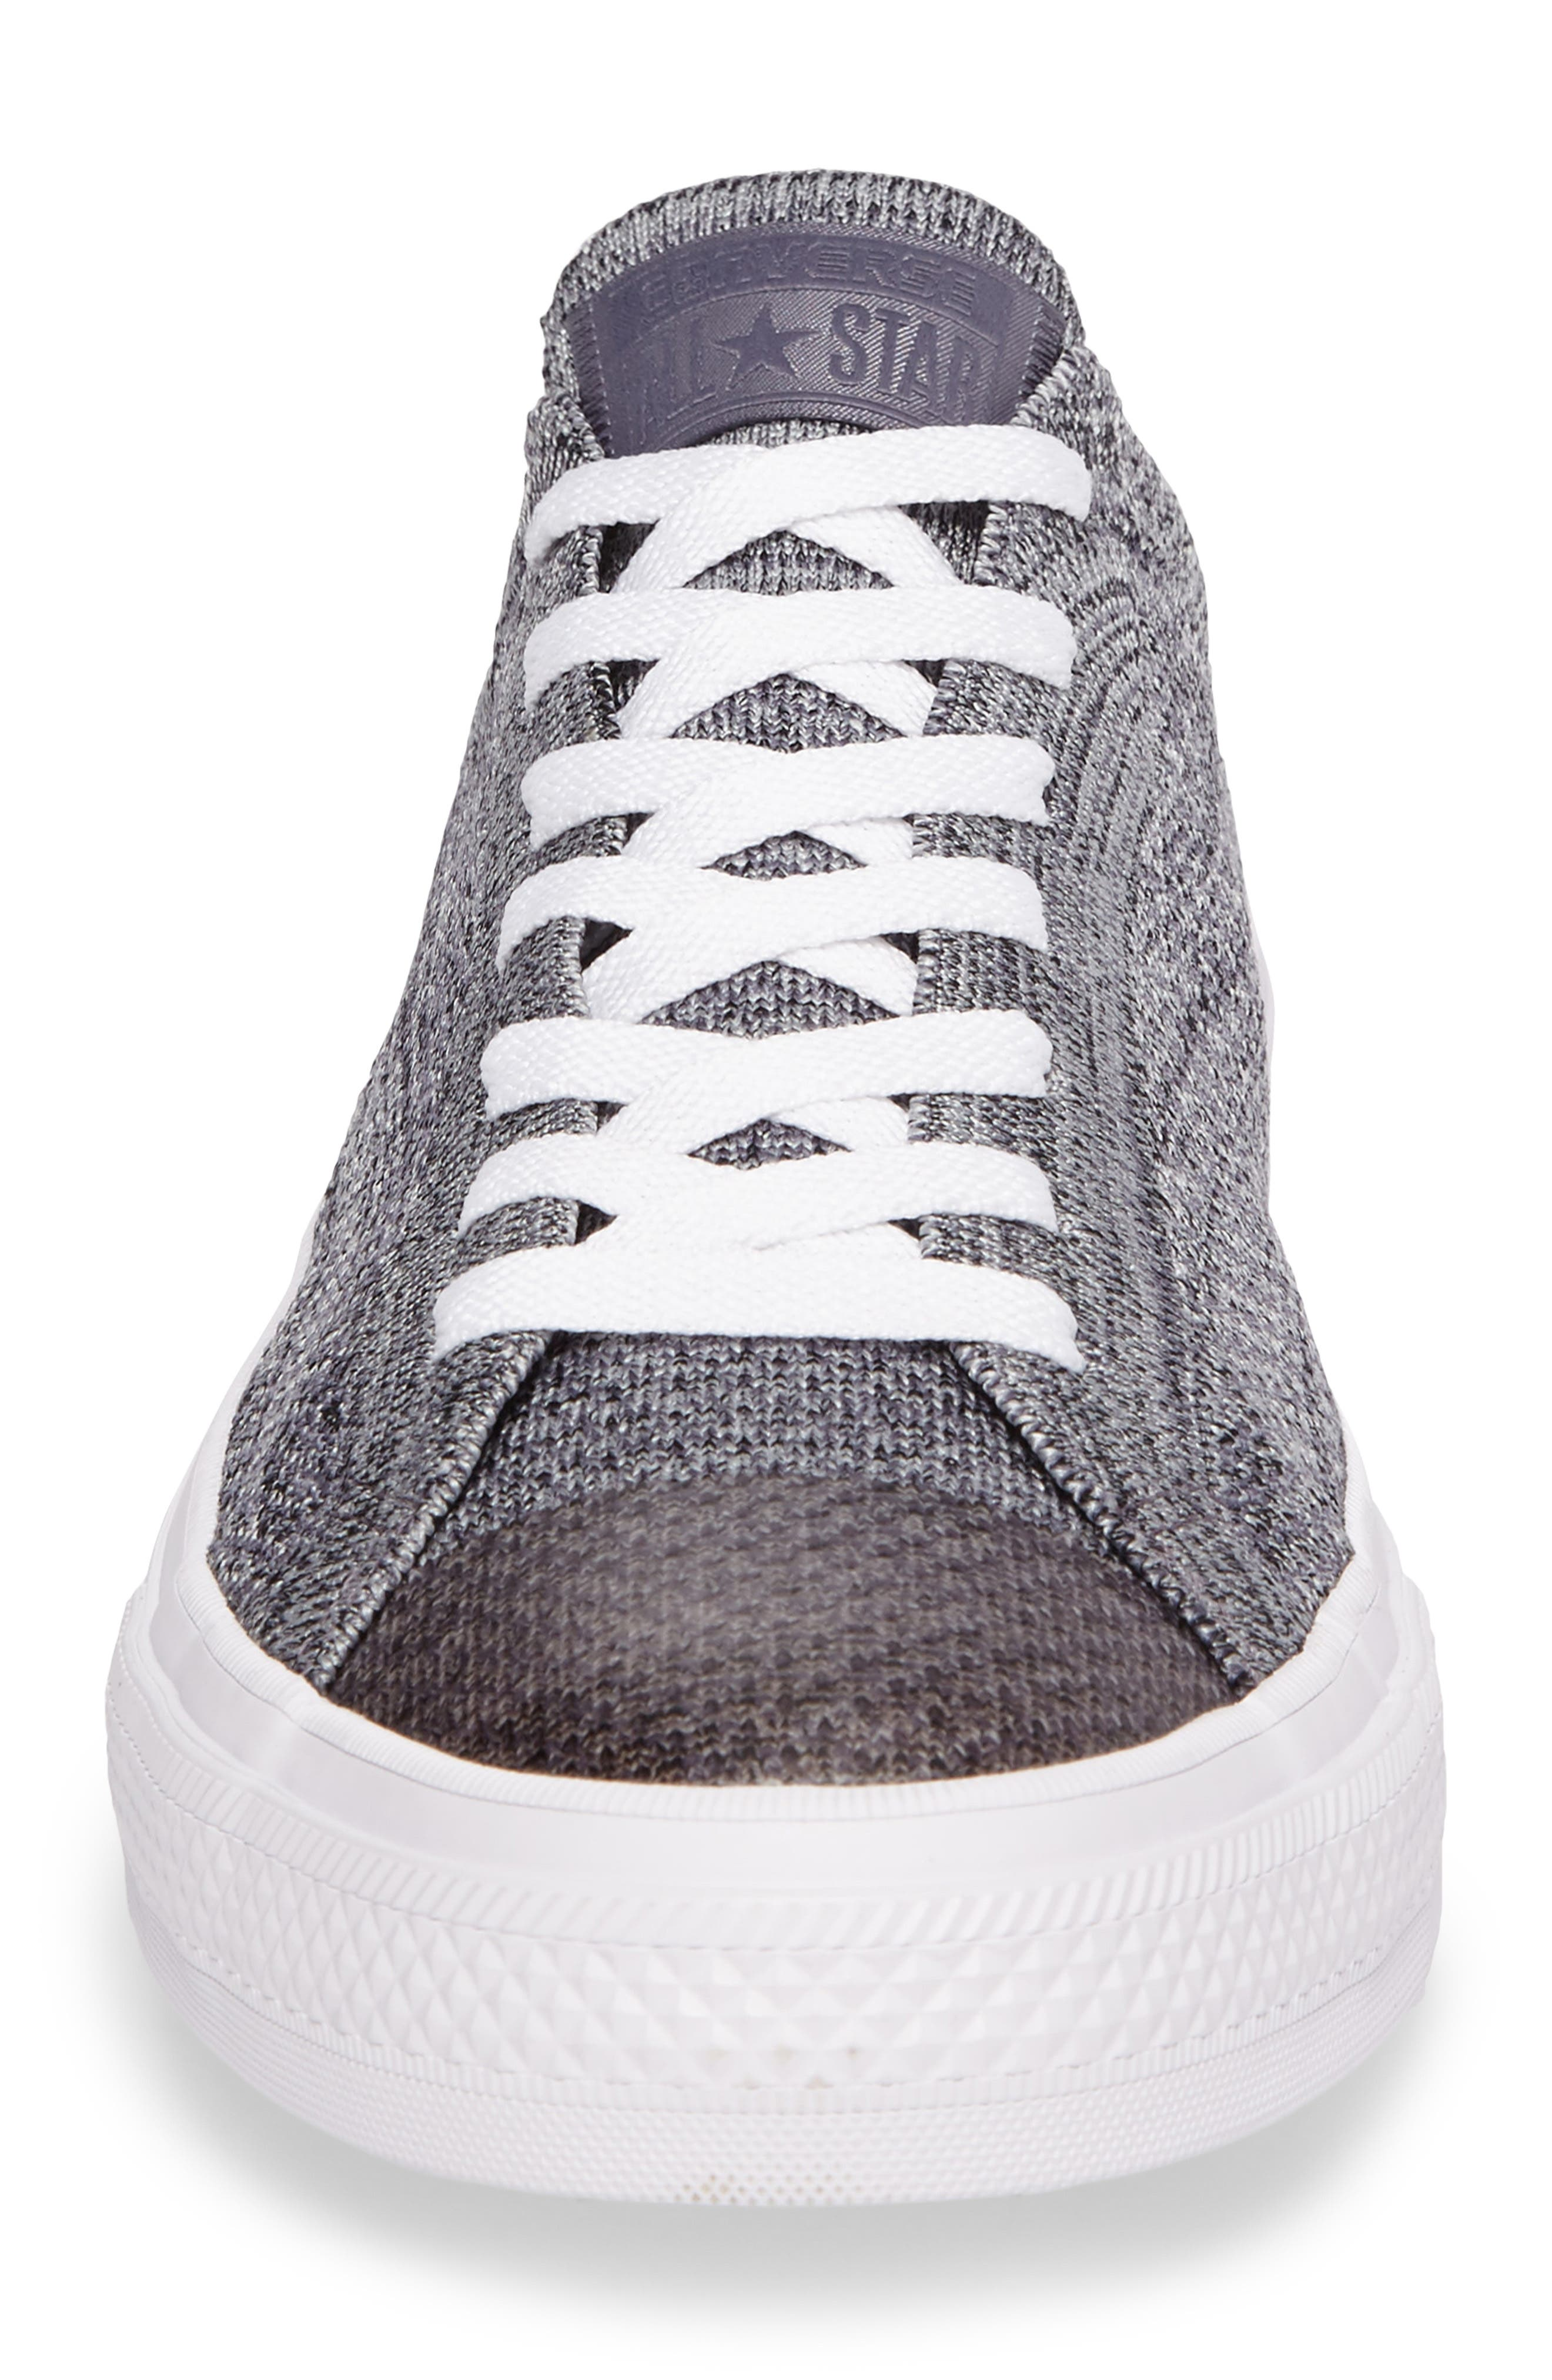 Chuck Taylor<sup>®</sup> All Star<sup>®</sup> Flyknit Sneaker,                             Alternate thumbnail 4, color,                             Carbon